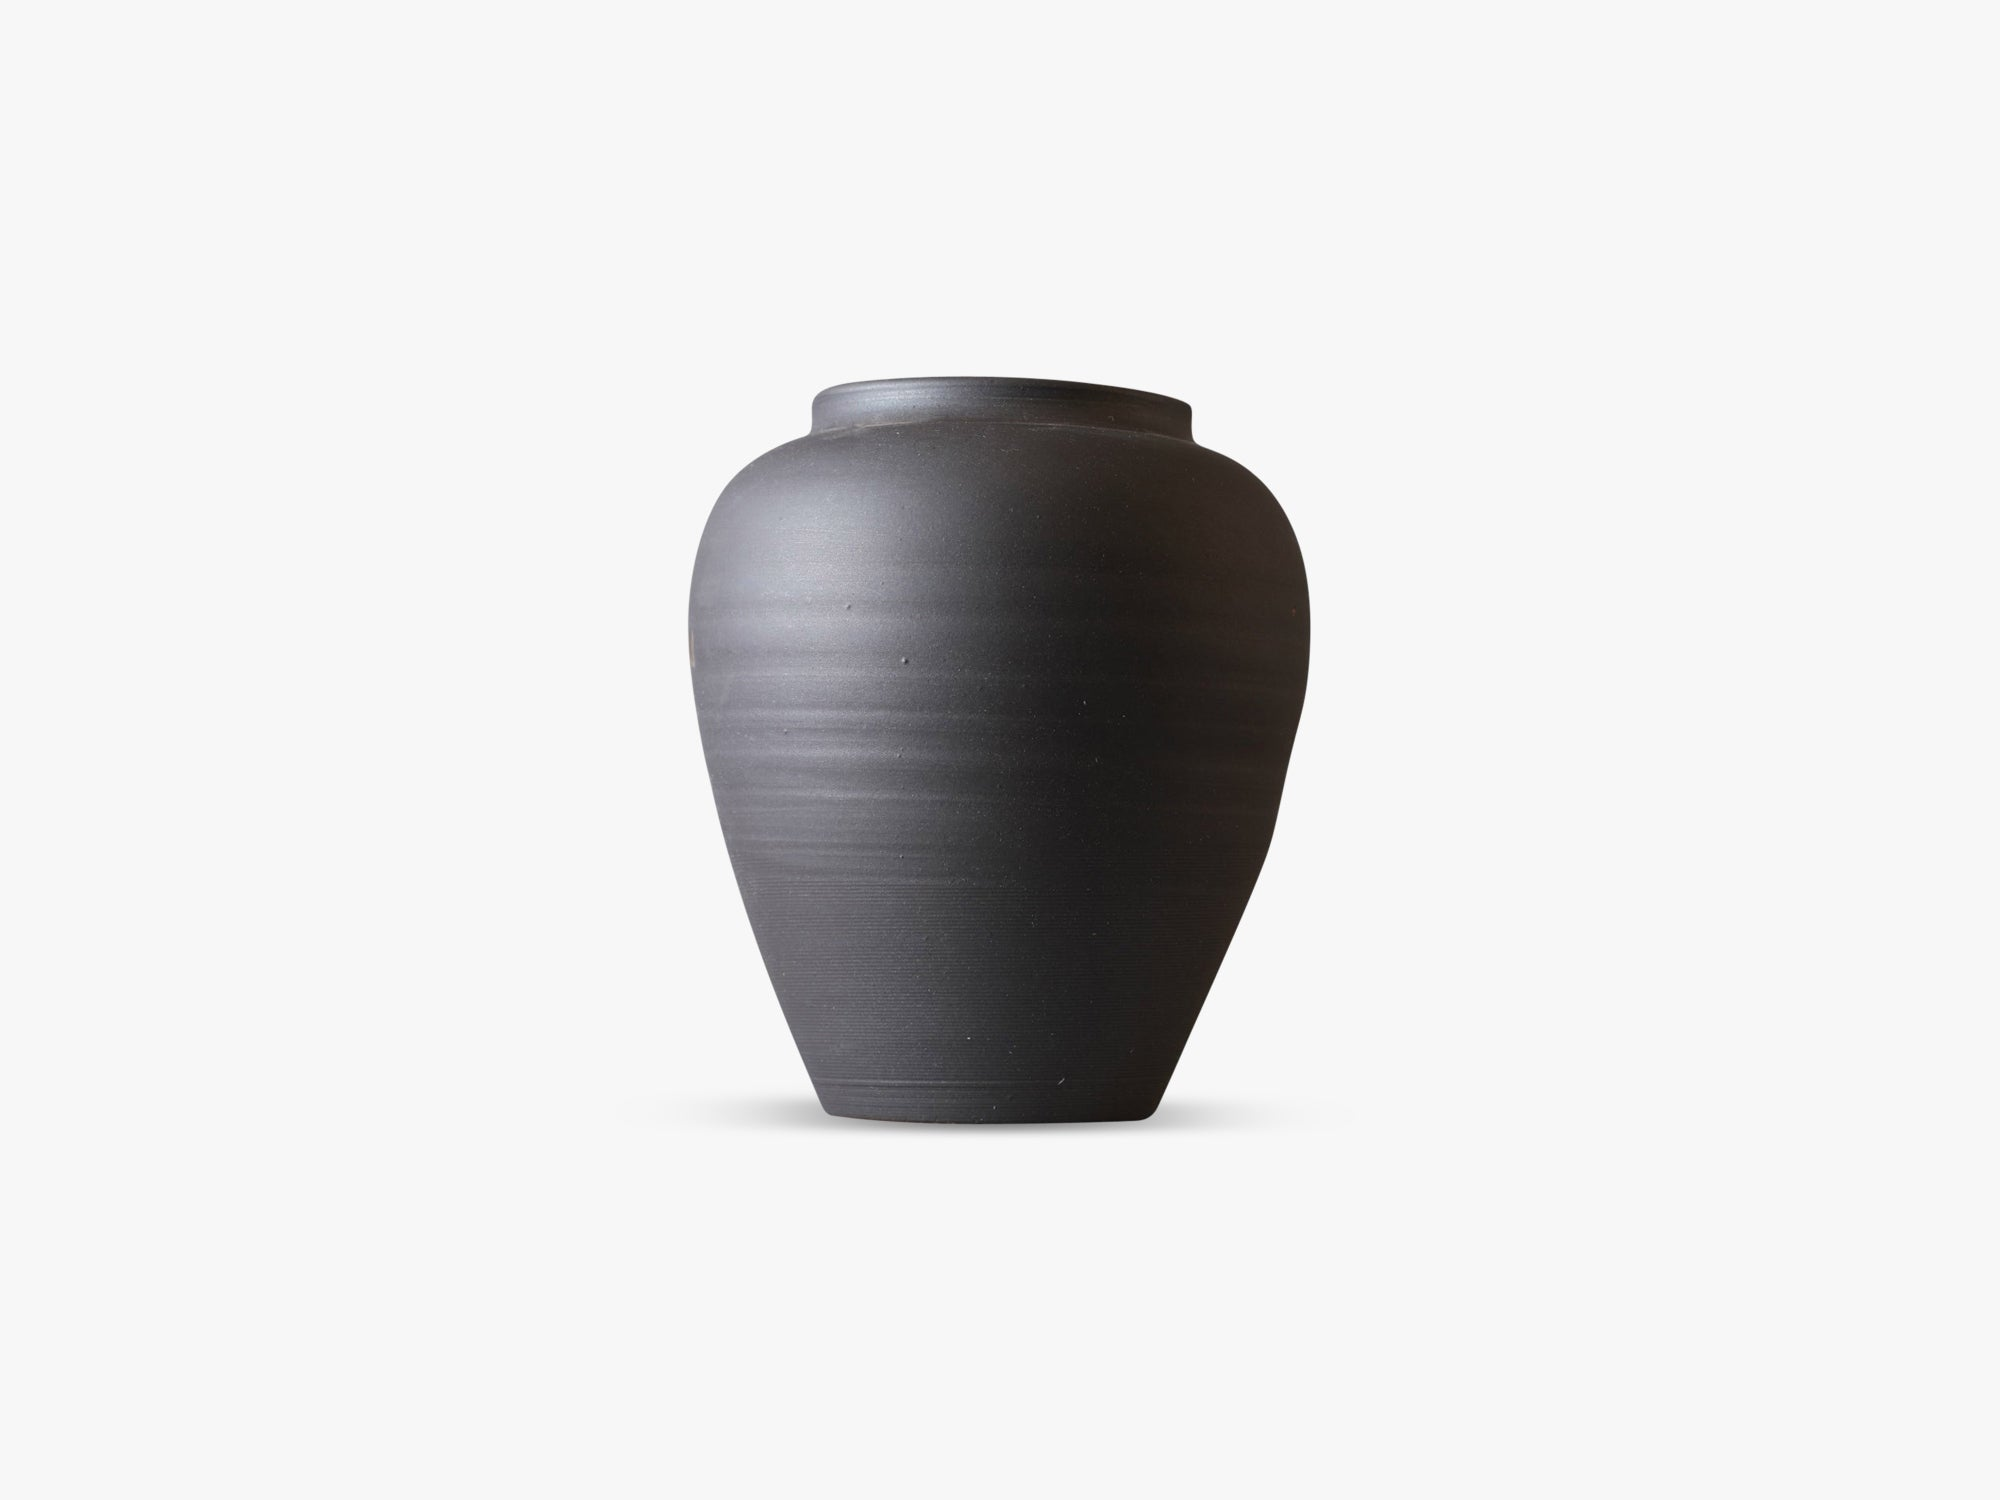 Boyhood Ceramic Pot - Large, Matt Dark fra Specktrum